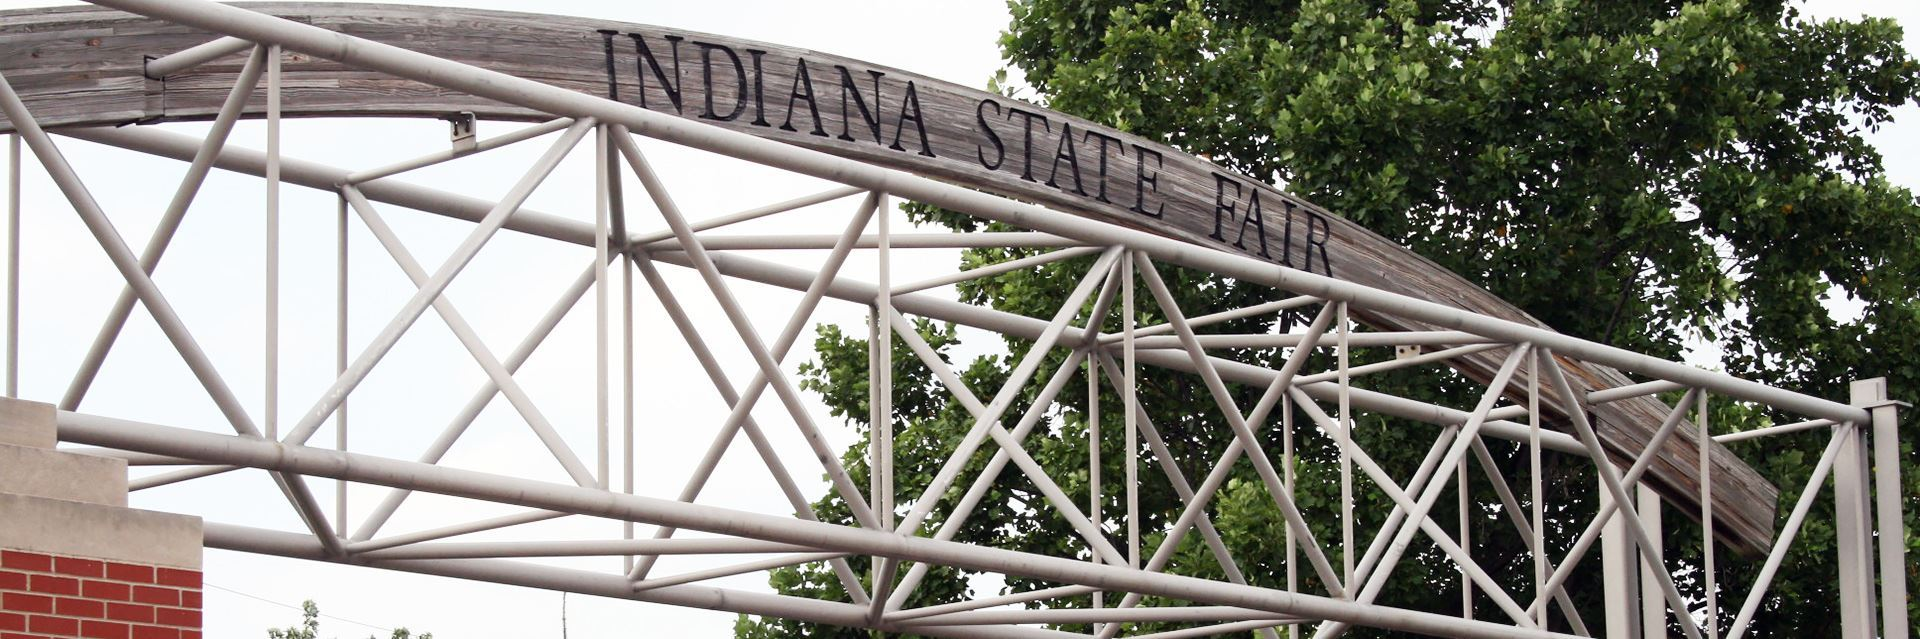 Directions & Parking - Indiana State Fair on